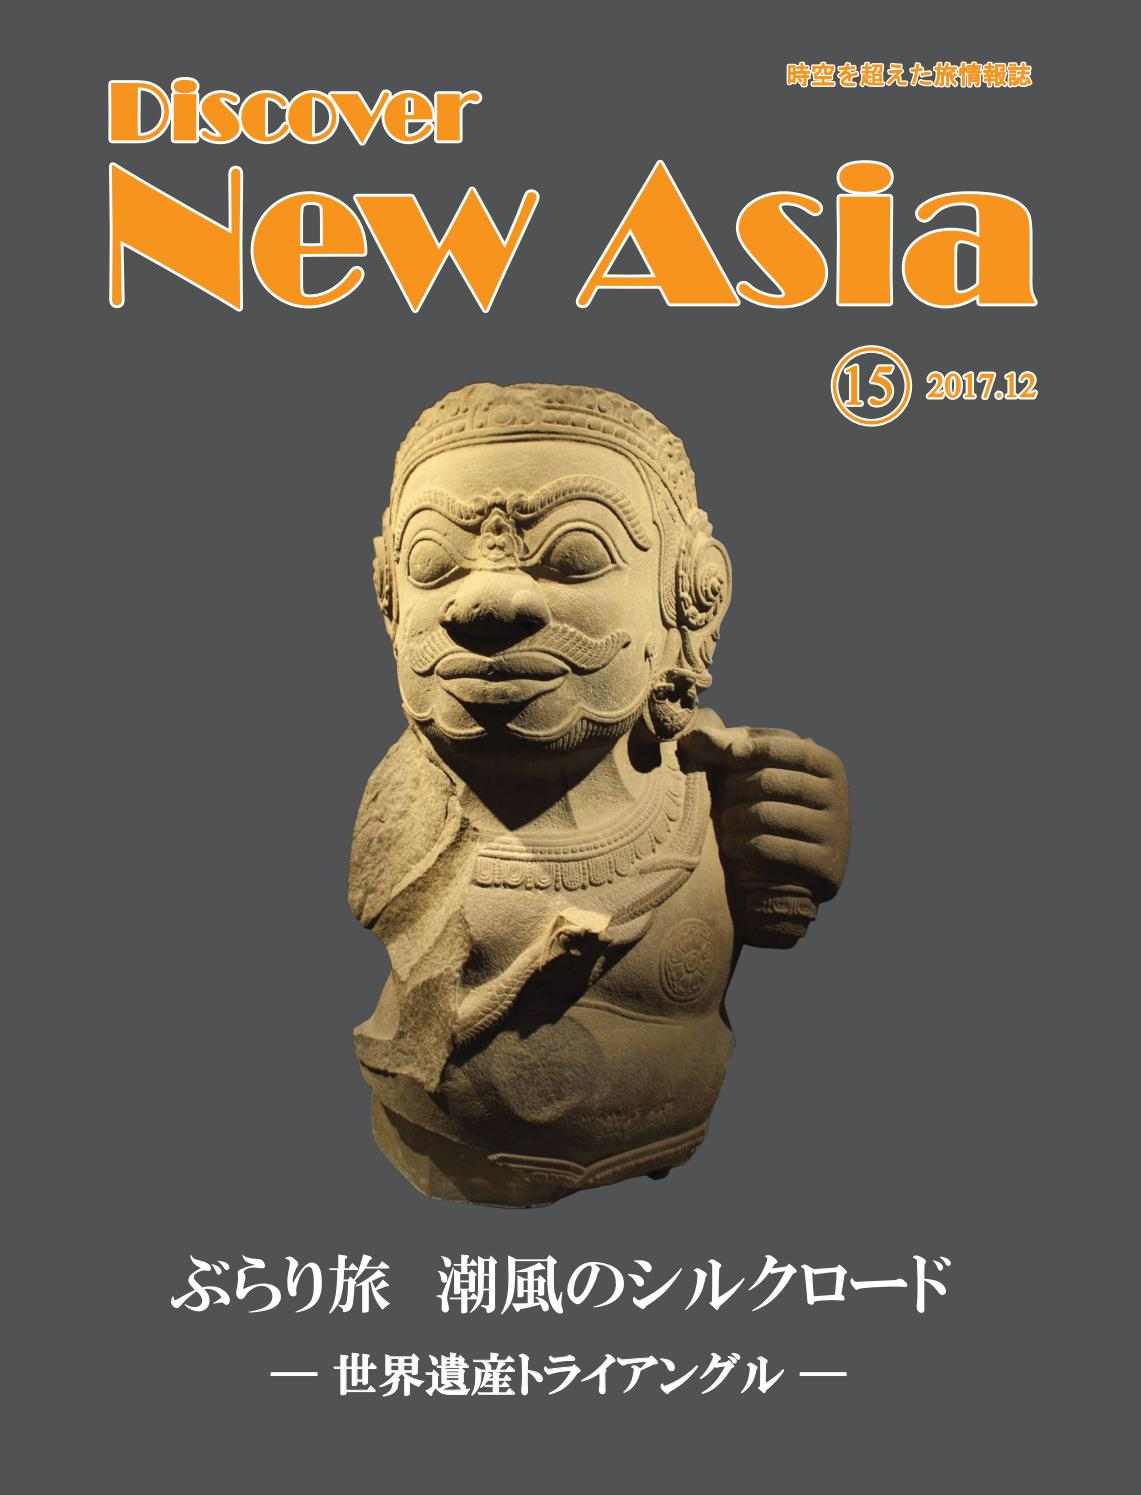 New Asia No.15 by Discover New Asia - issuu